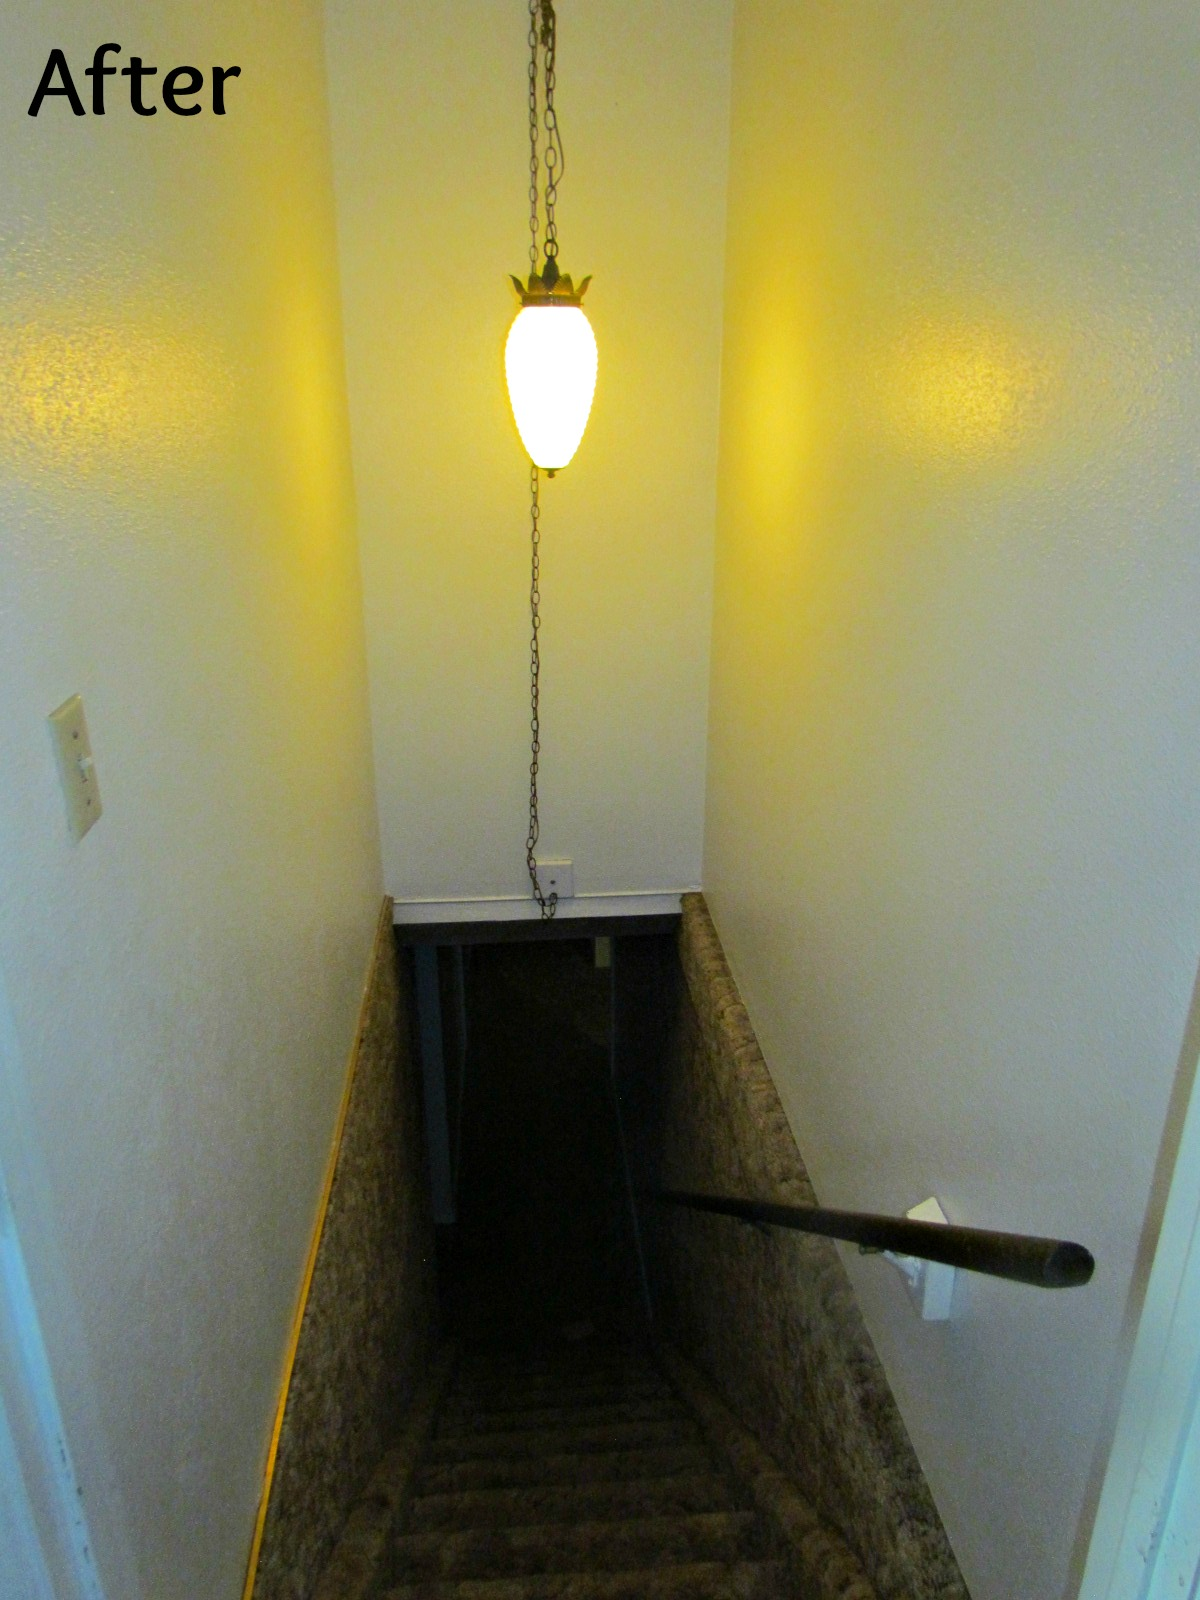 Lighting Basement Washroom Stairs: Lighting The Stairway